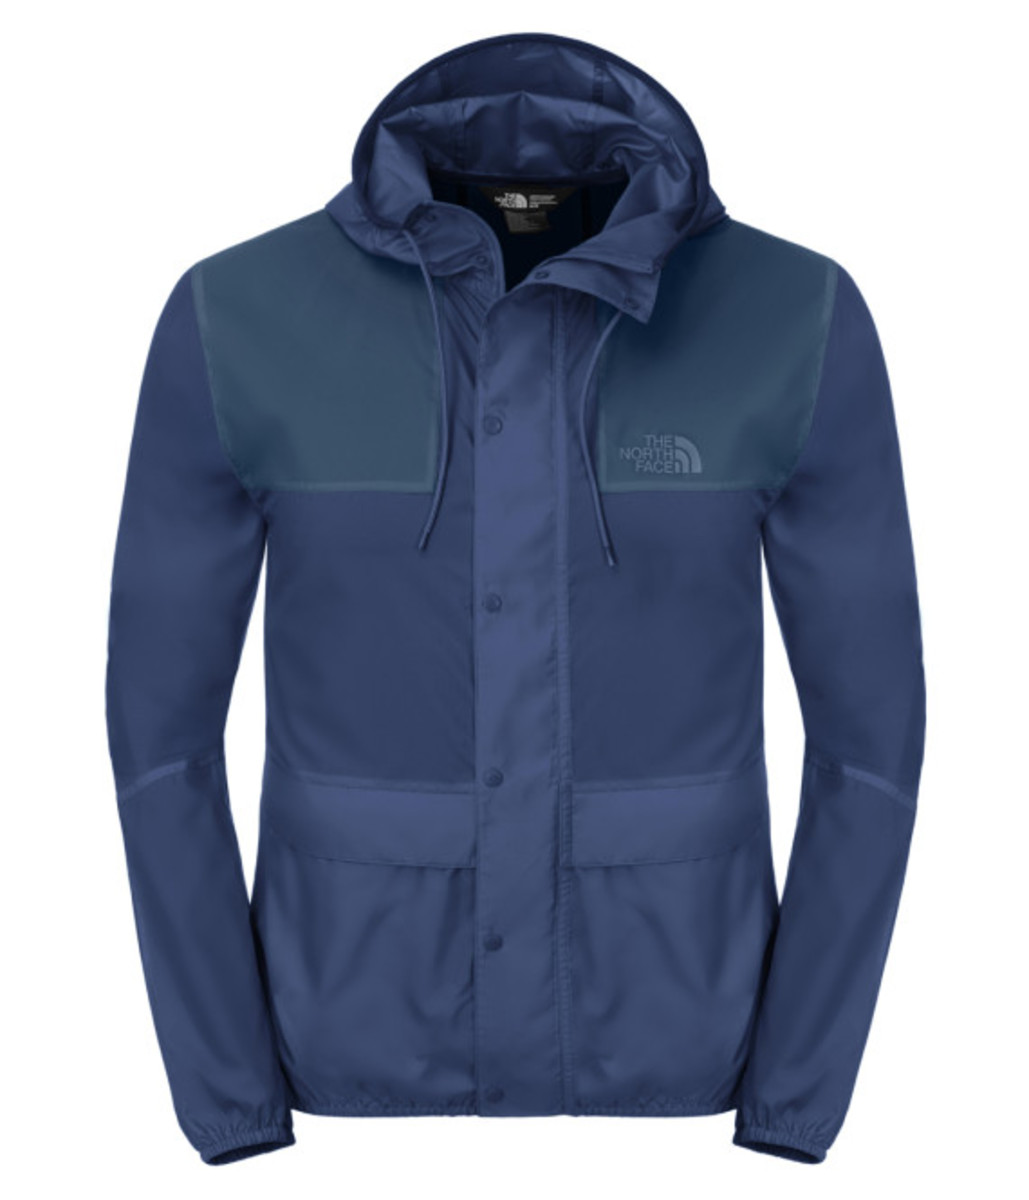 the-north-face-mountain-jacket-11